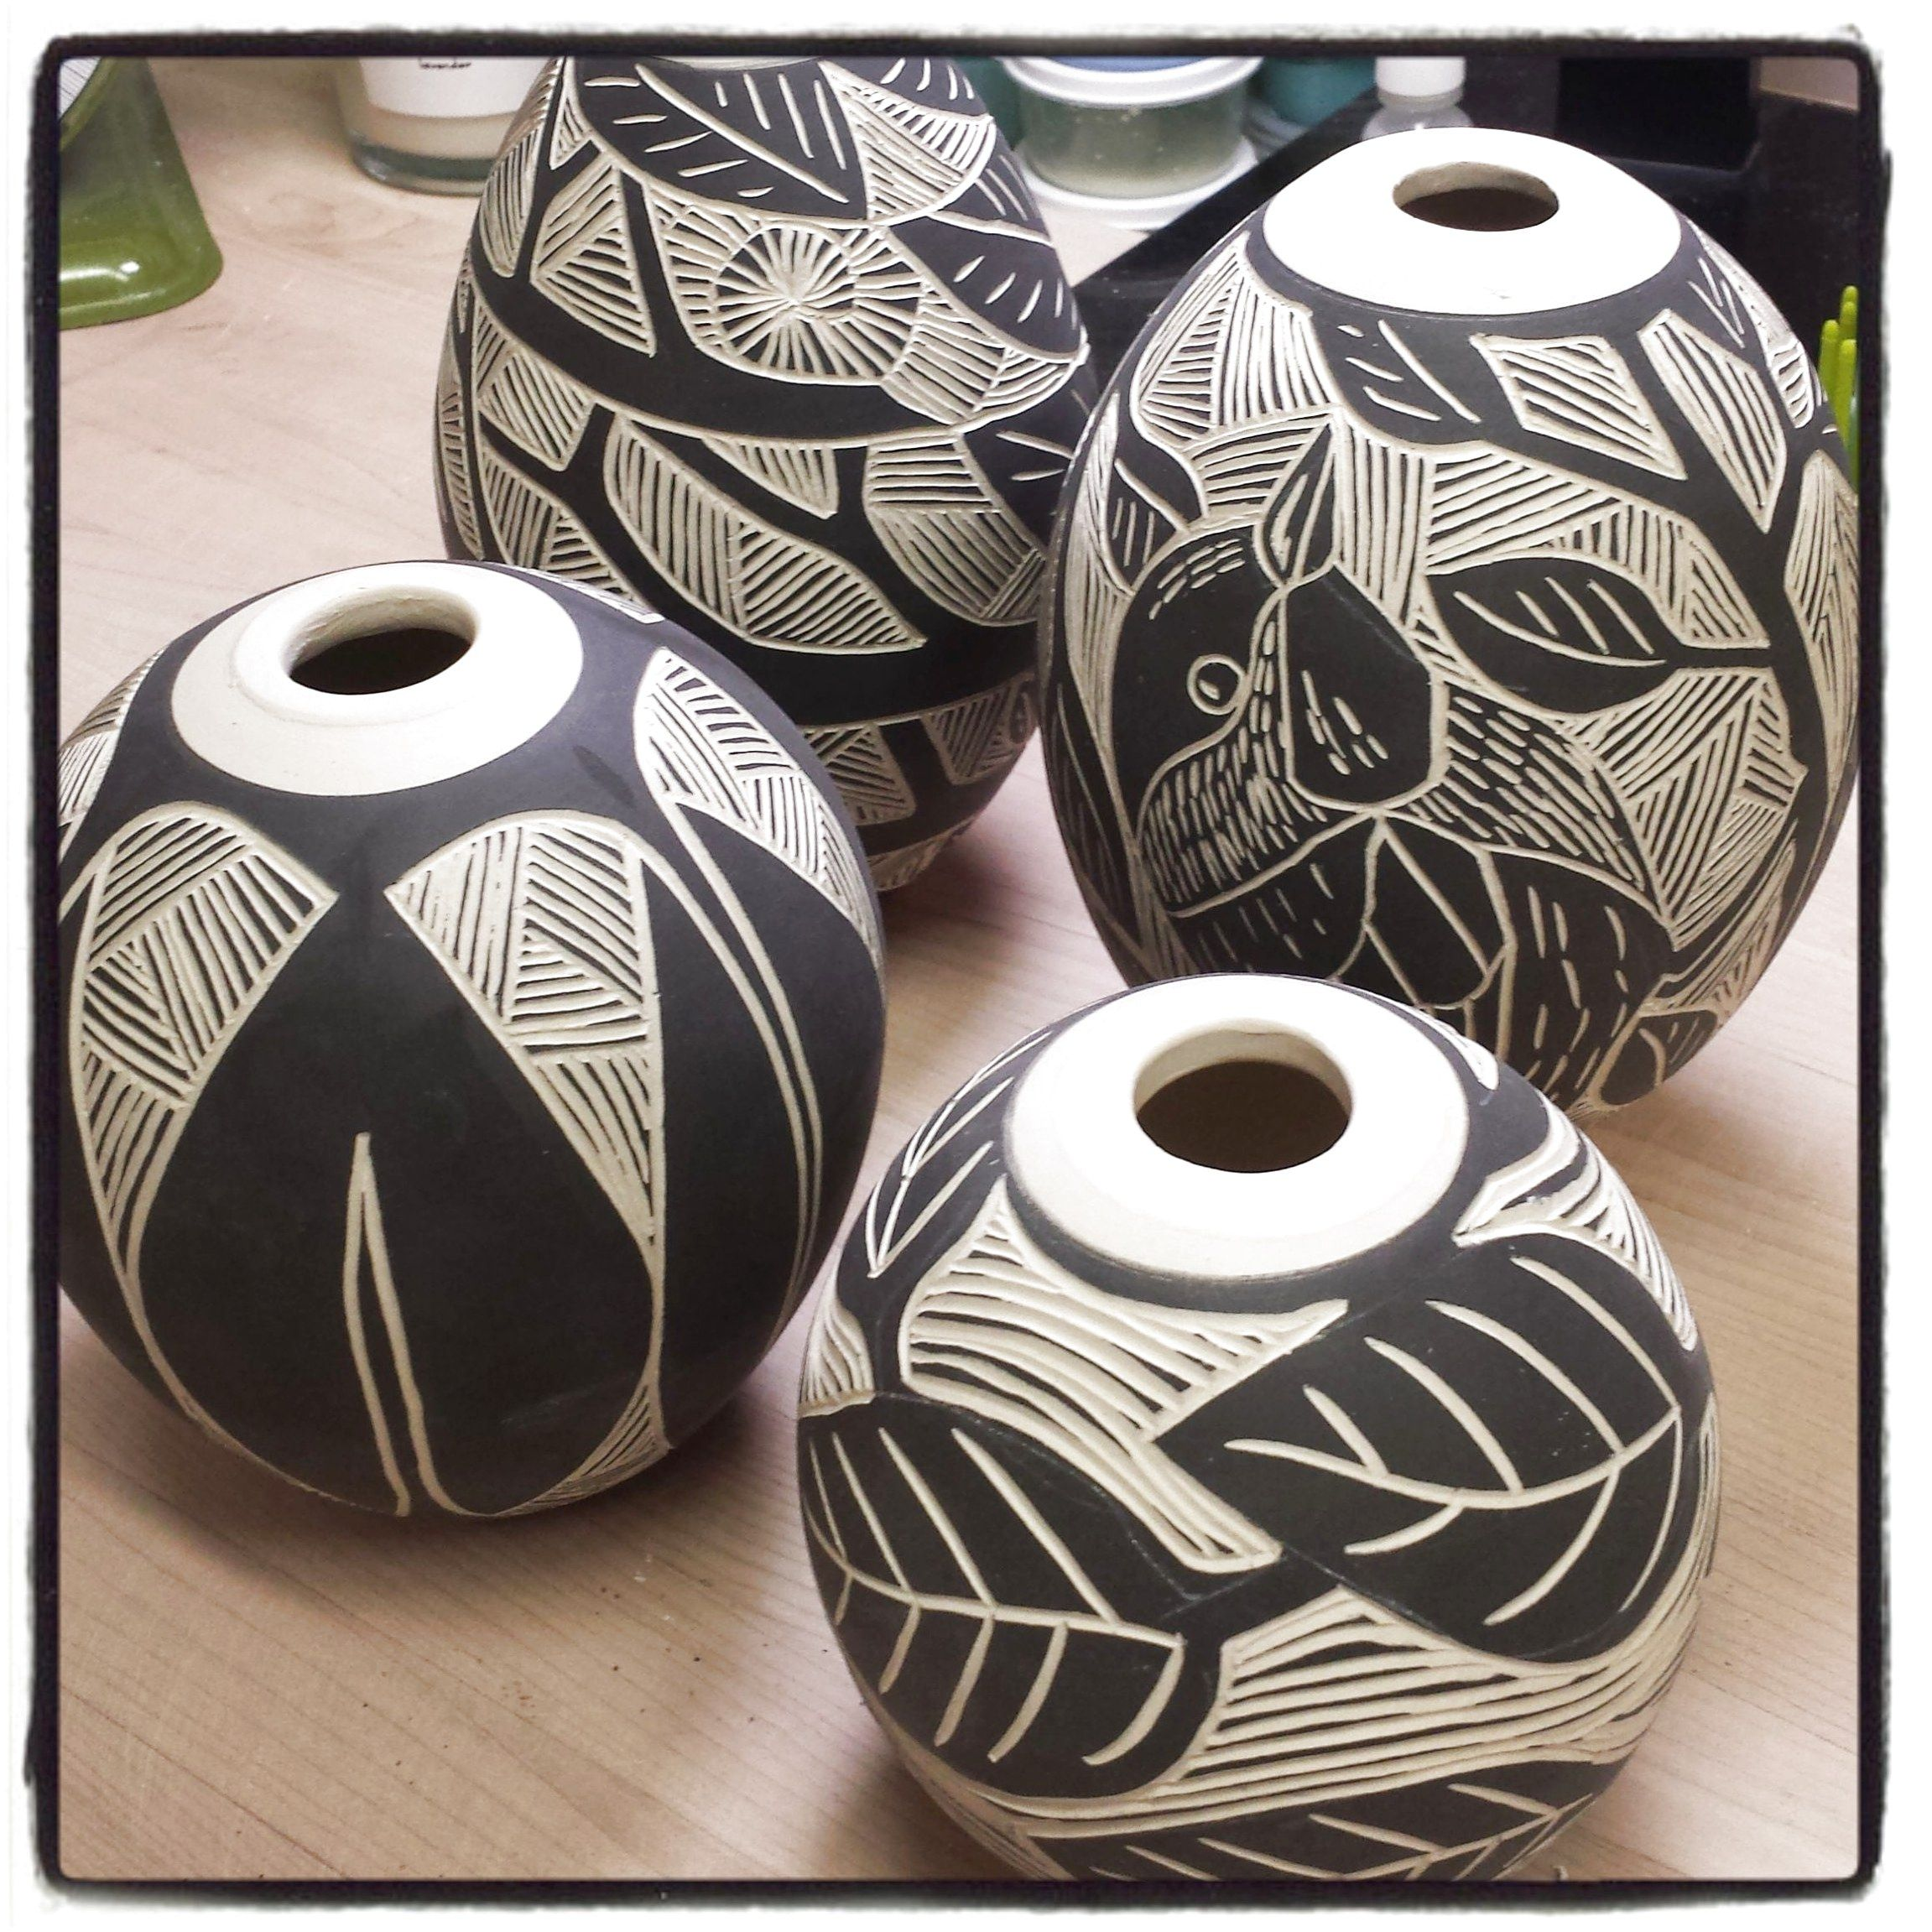 Sgraffito Ceramics Pottery Homedecor Ceramic Homedecorwithpottery Click Now For More Pottery Designs Pottery Sgraffito